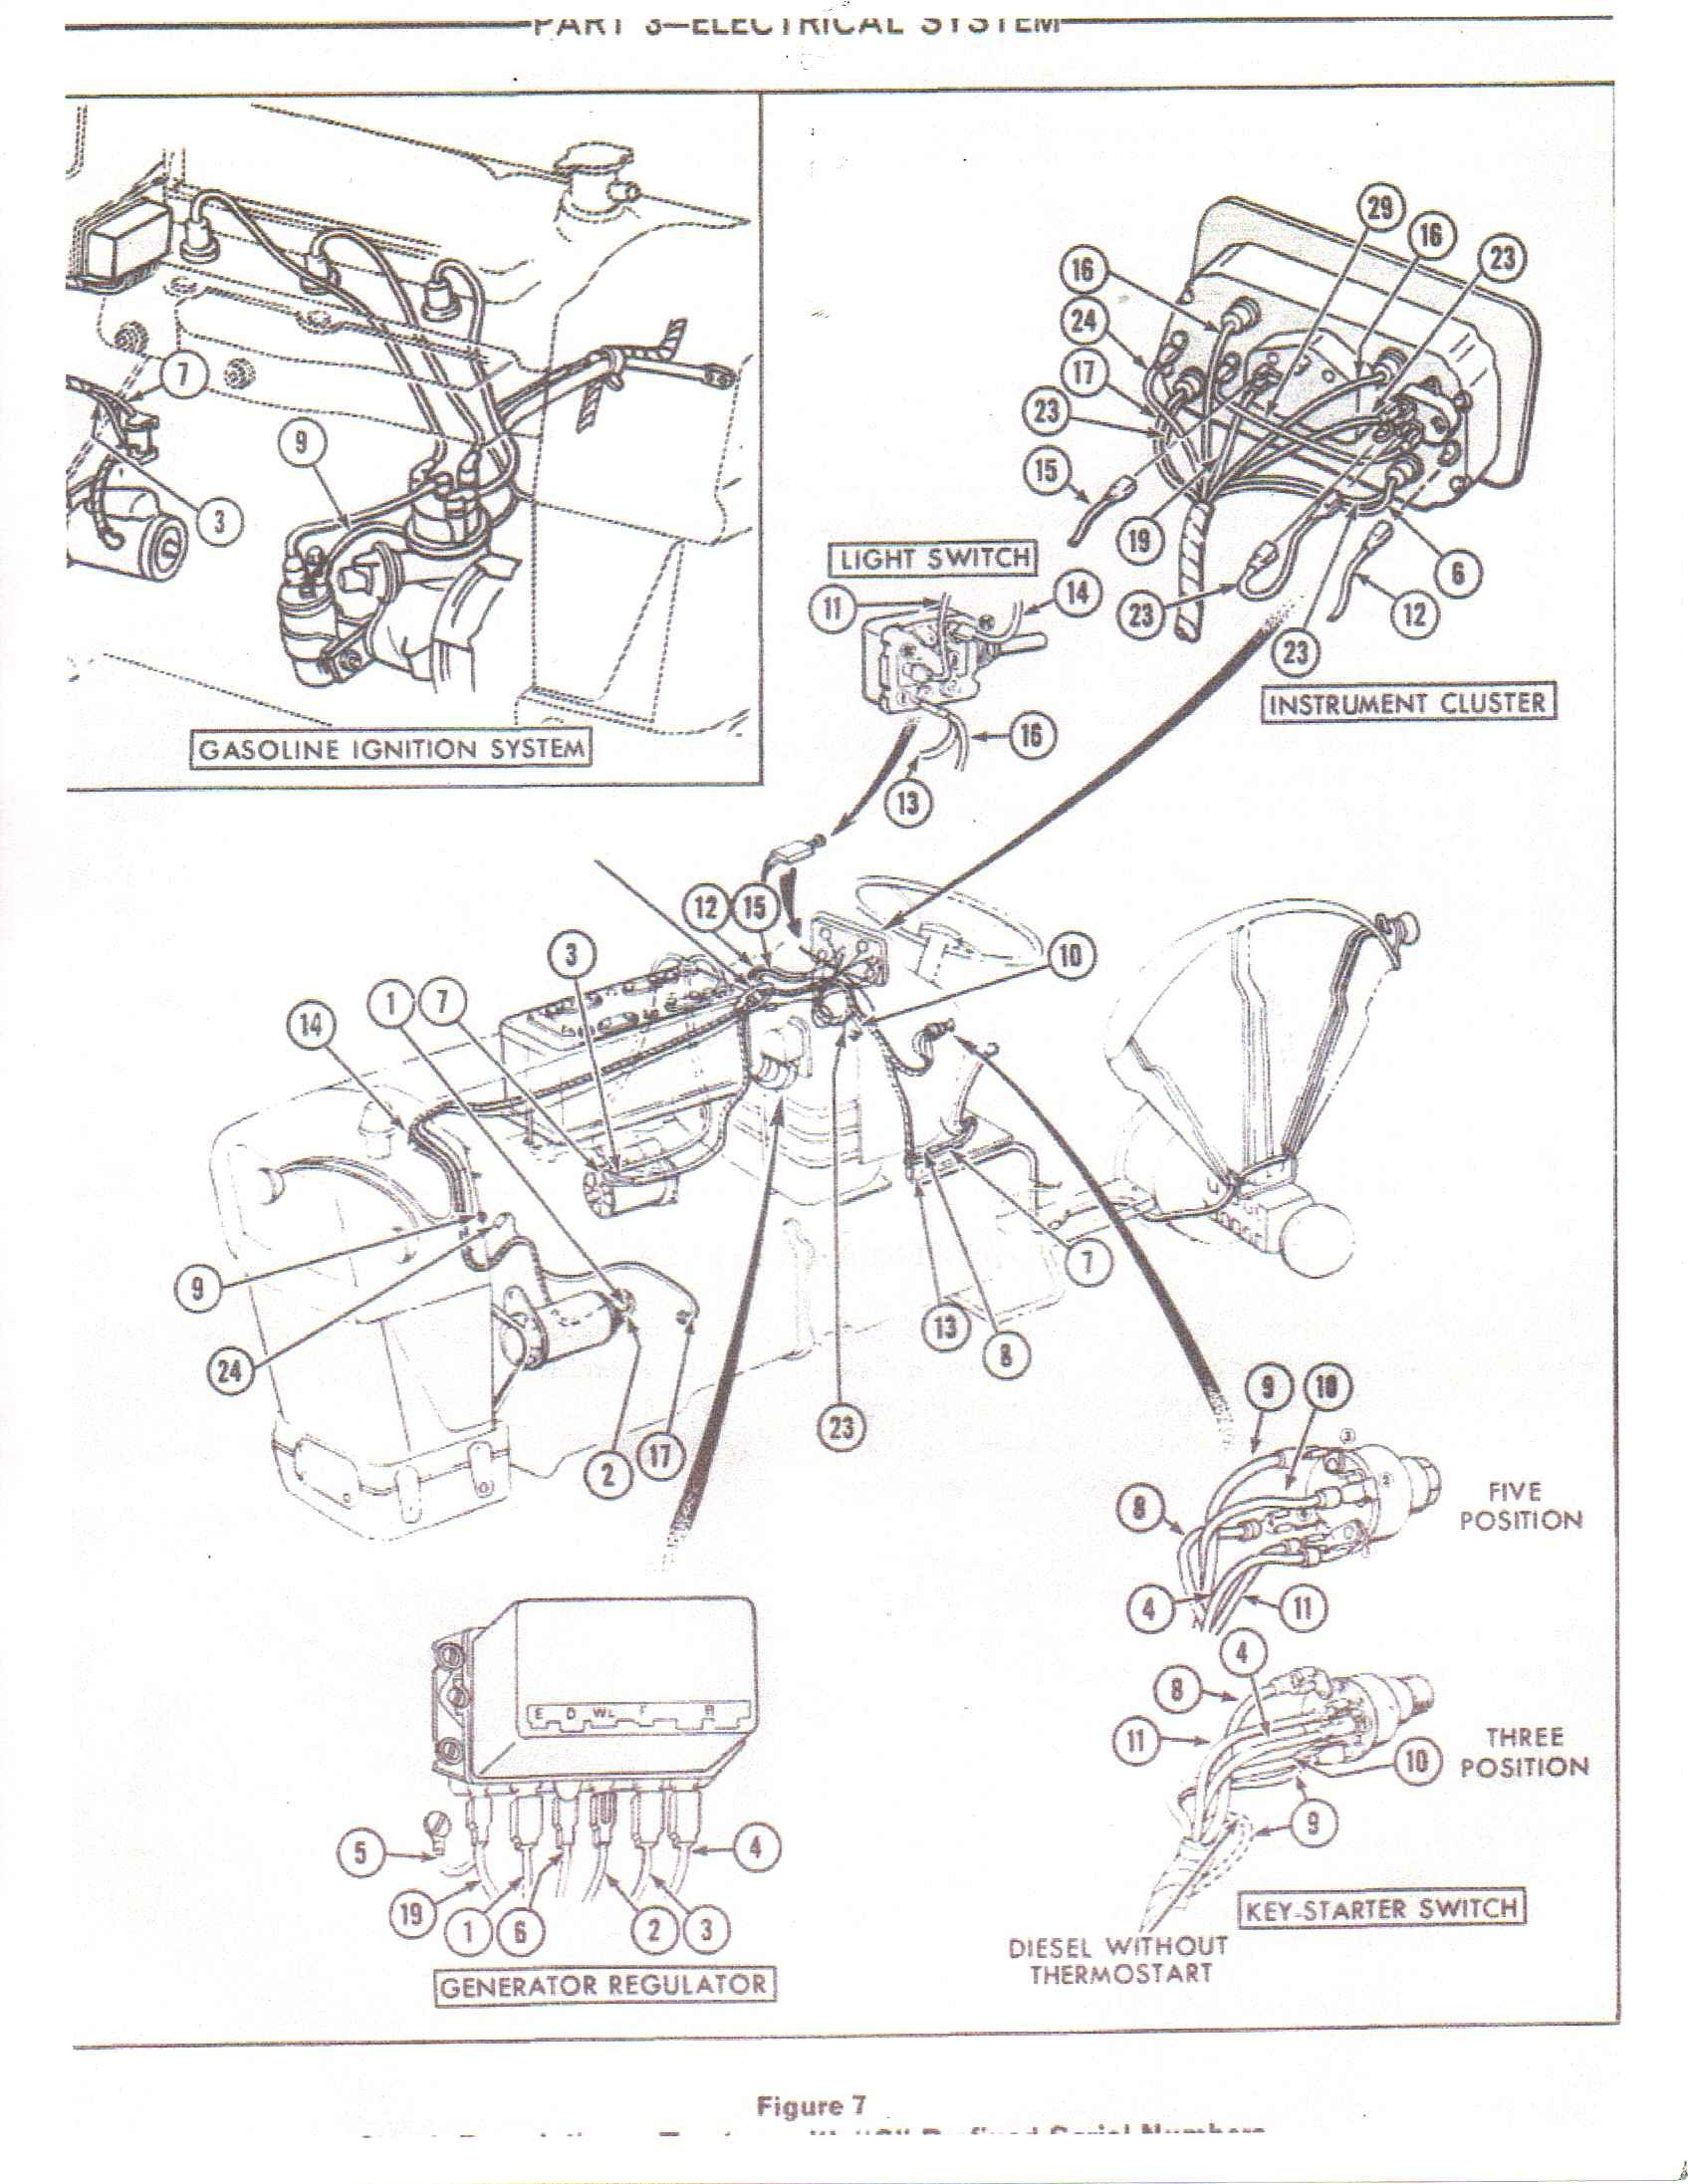 Ford 3000 Parts Diagram ford 5000 Sel Wiring Harness Daily Update Wiring Diagram Of Ford 3000 Parts Diagram